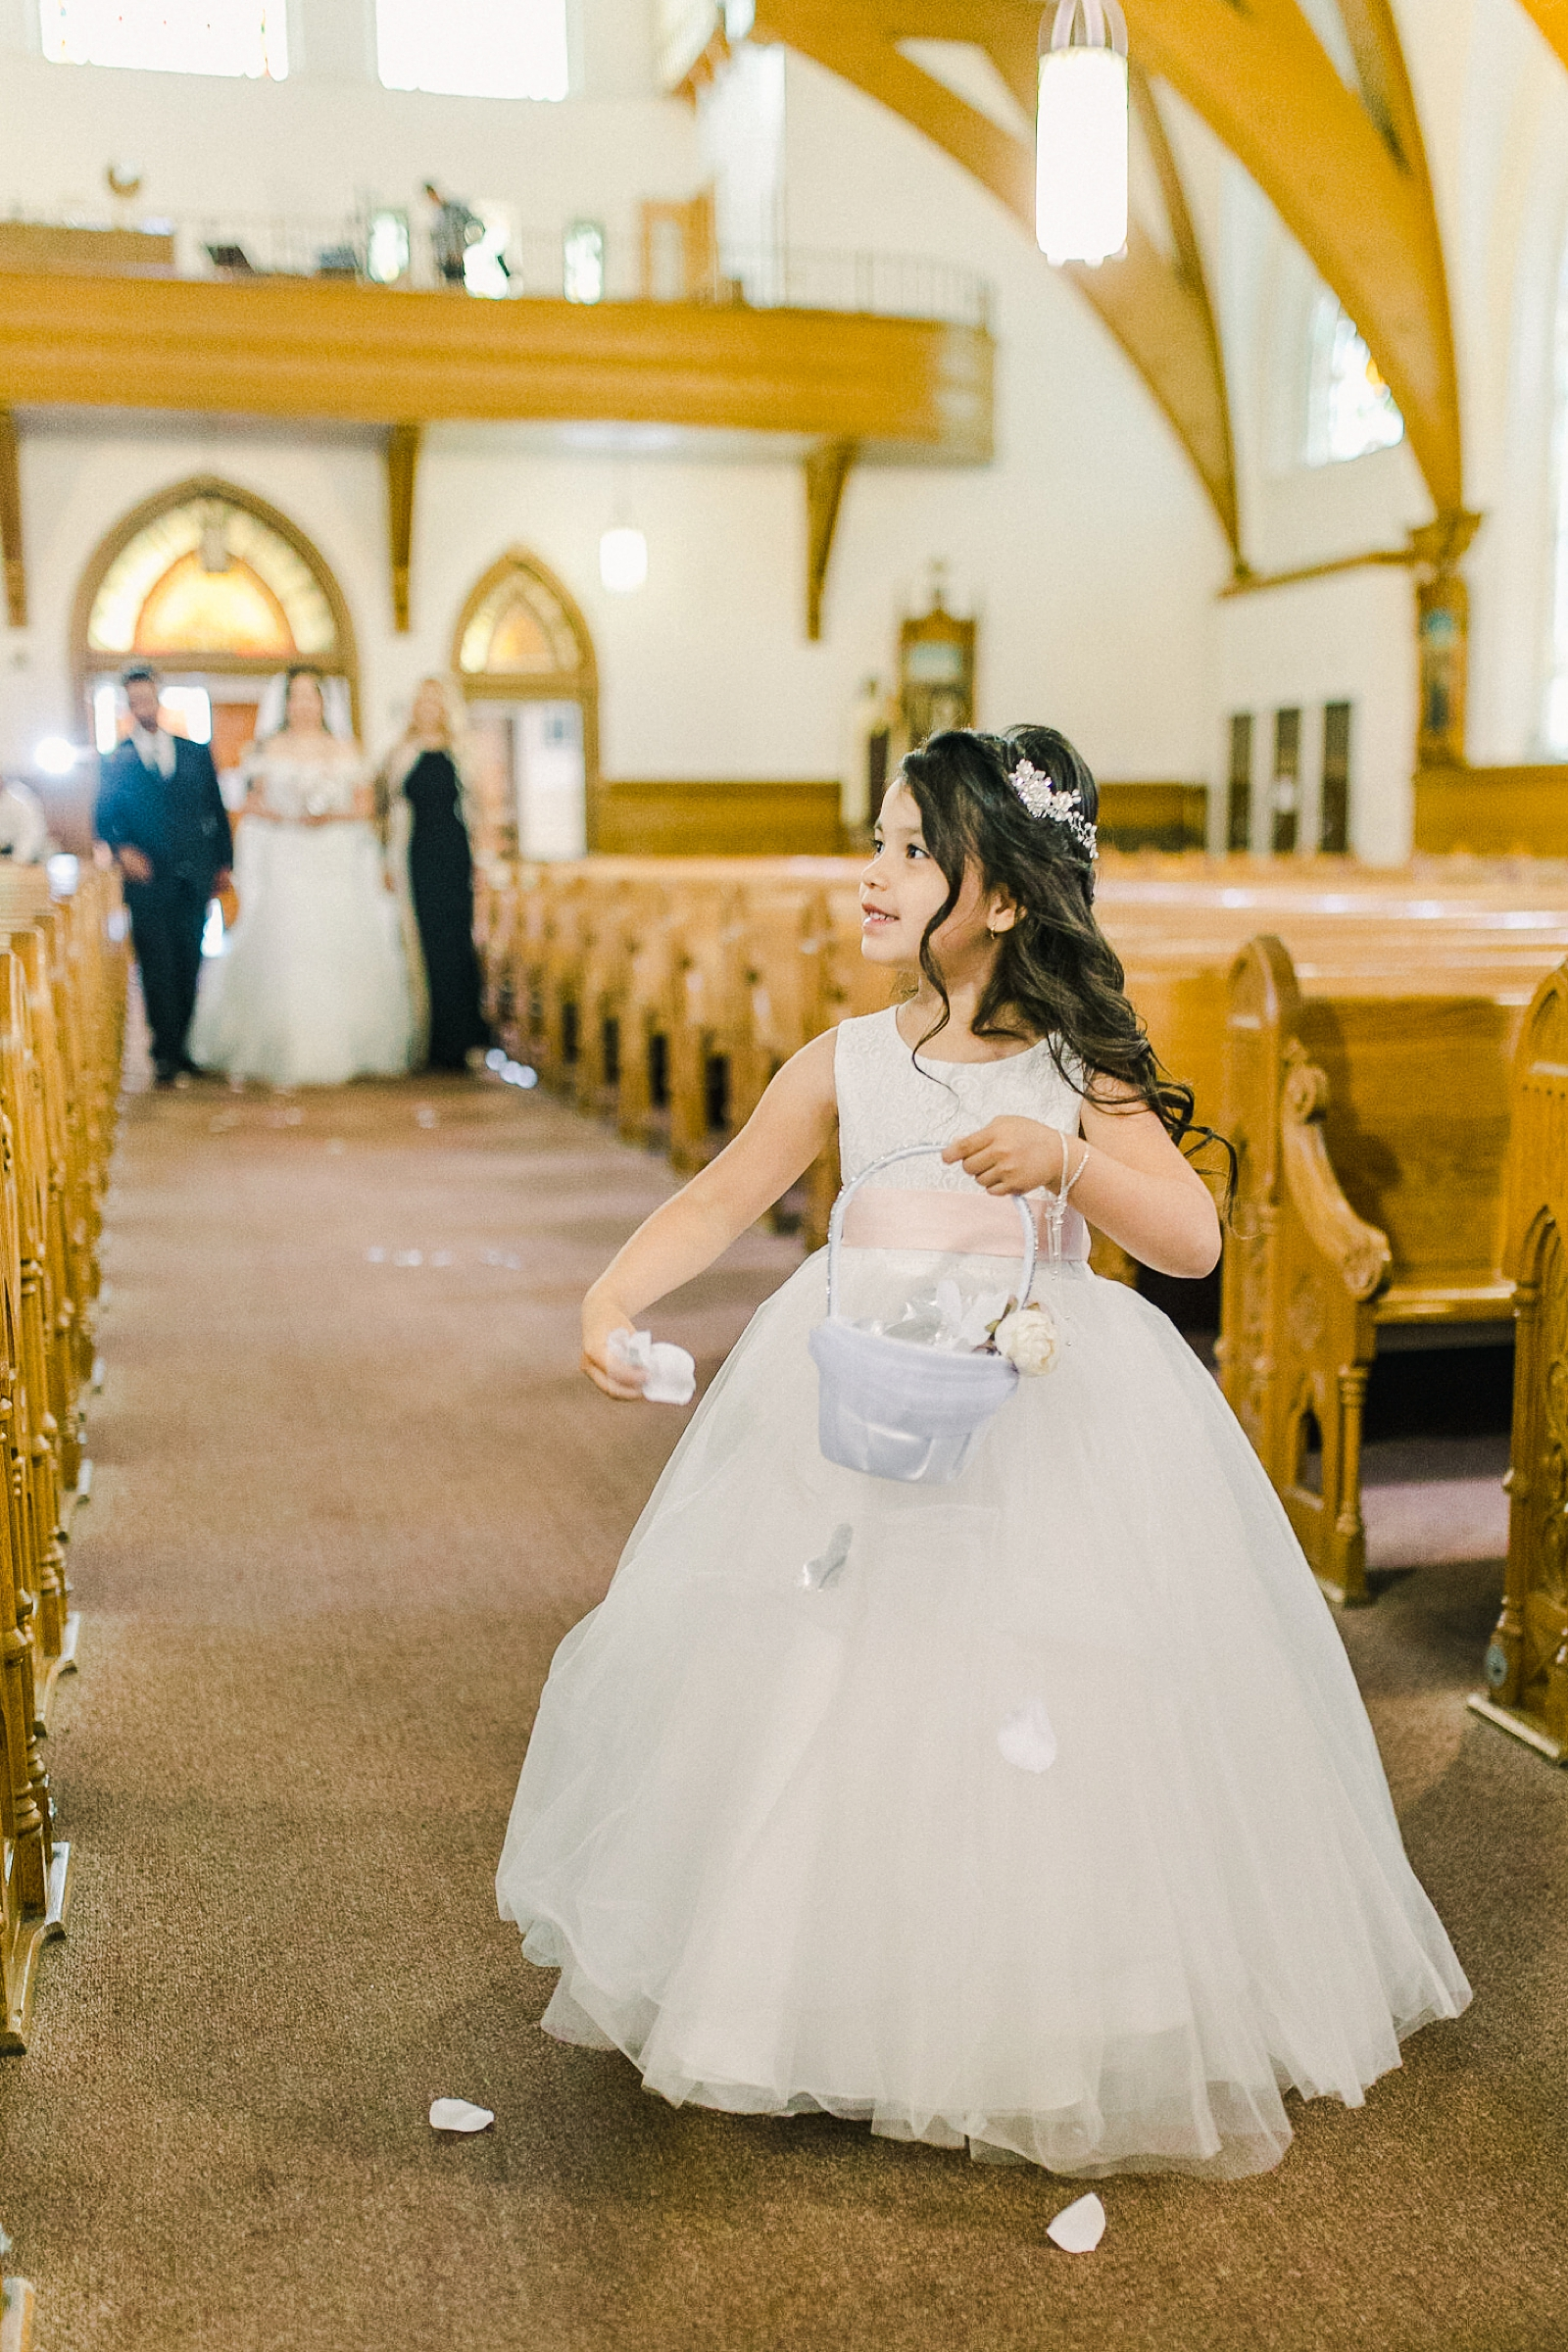 Cache Valley Logan Traditional Catholic Wedding Ceremony in a cathedral, Utah wedding photography, flower girl sprinkle petals